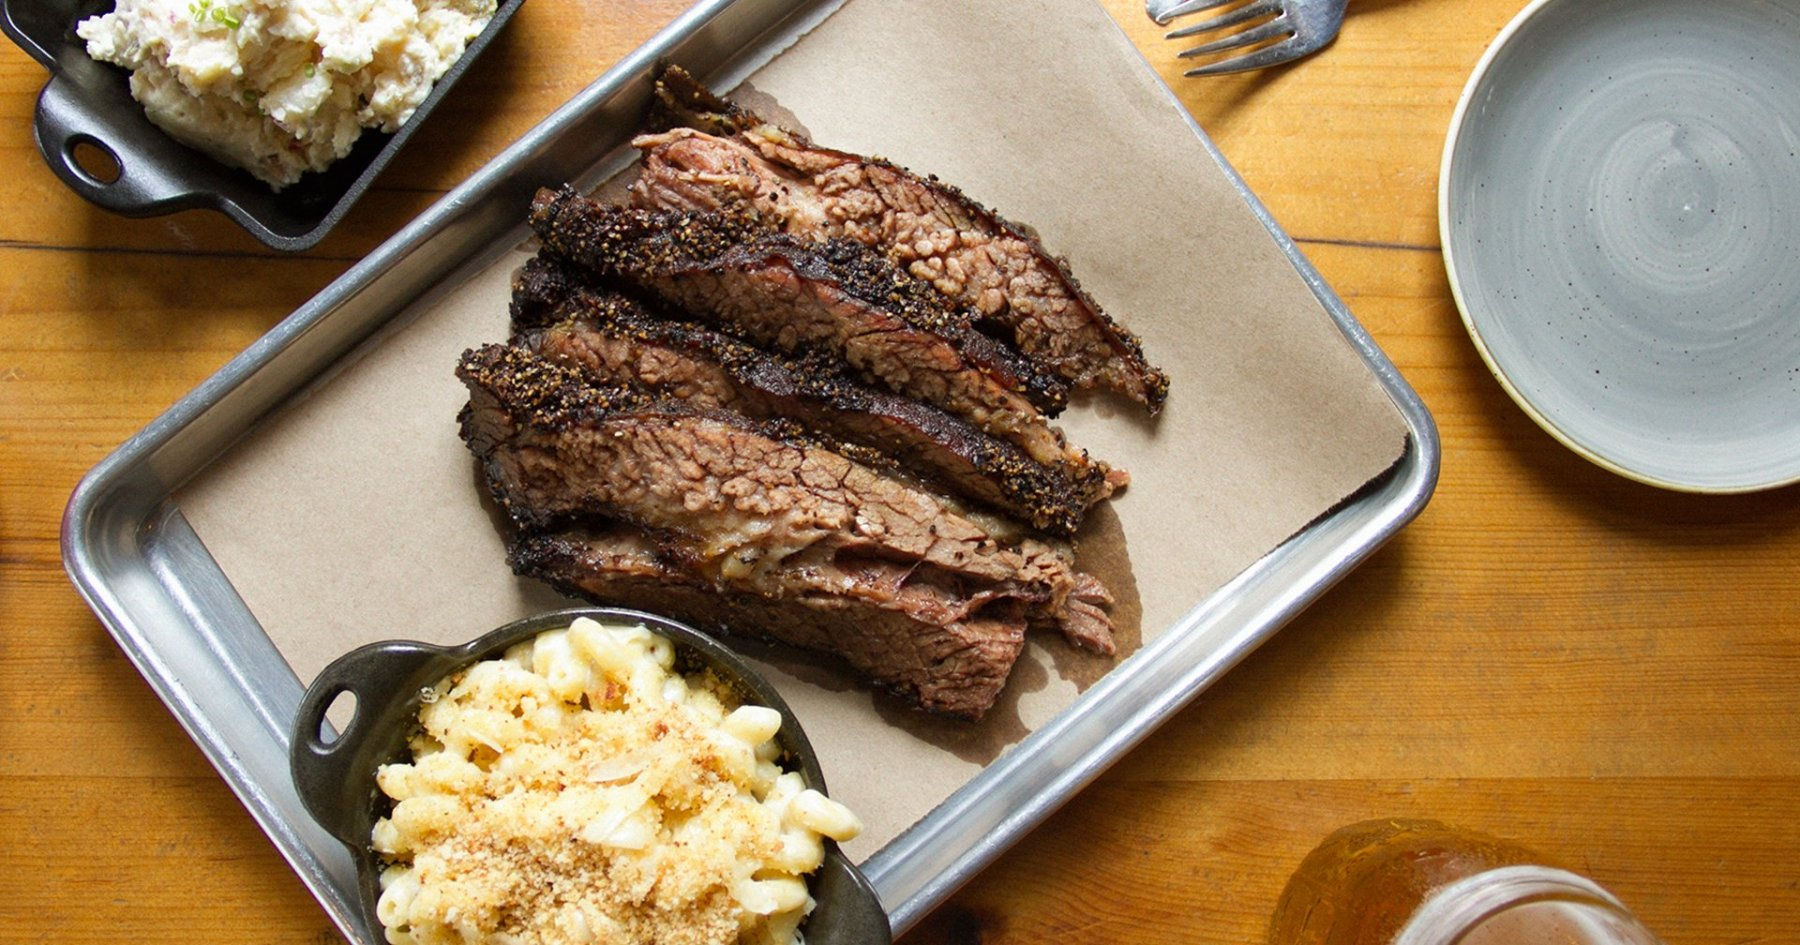 Charlie McKenna on How to Smoke the Perfect Brisket